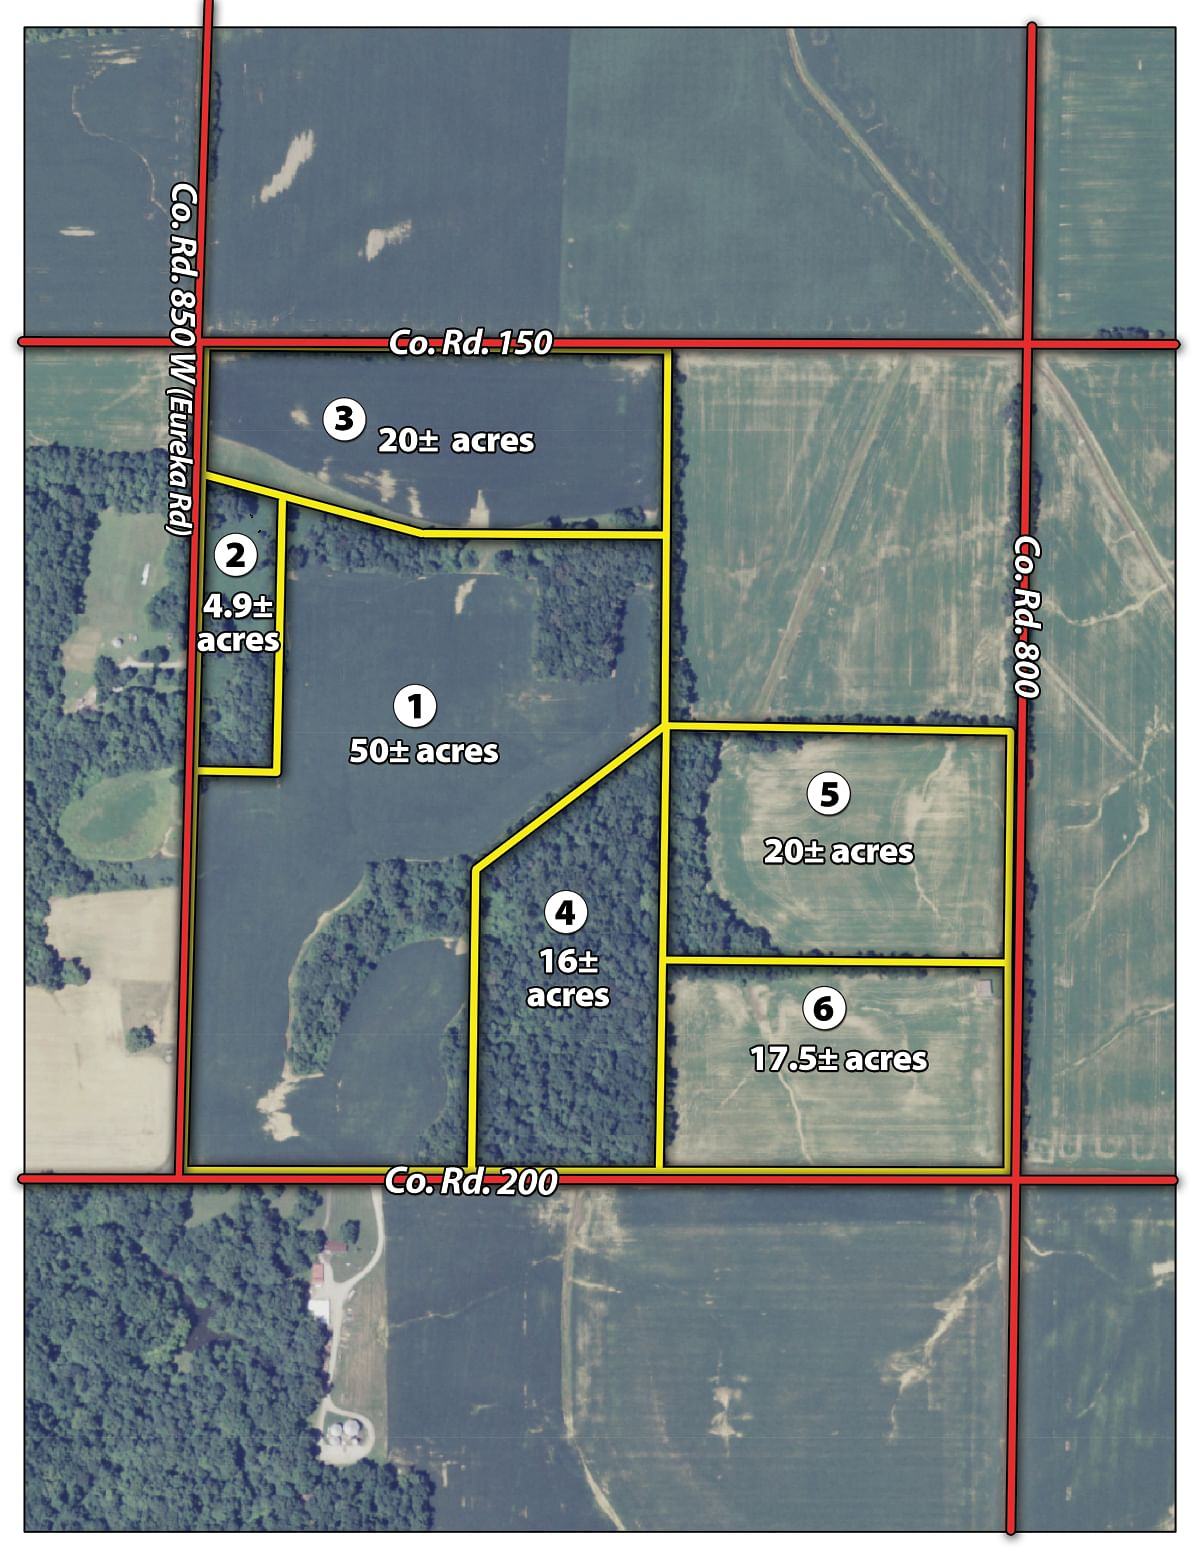 Indiana spencer county rockport - Tract Maps